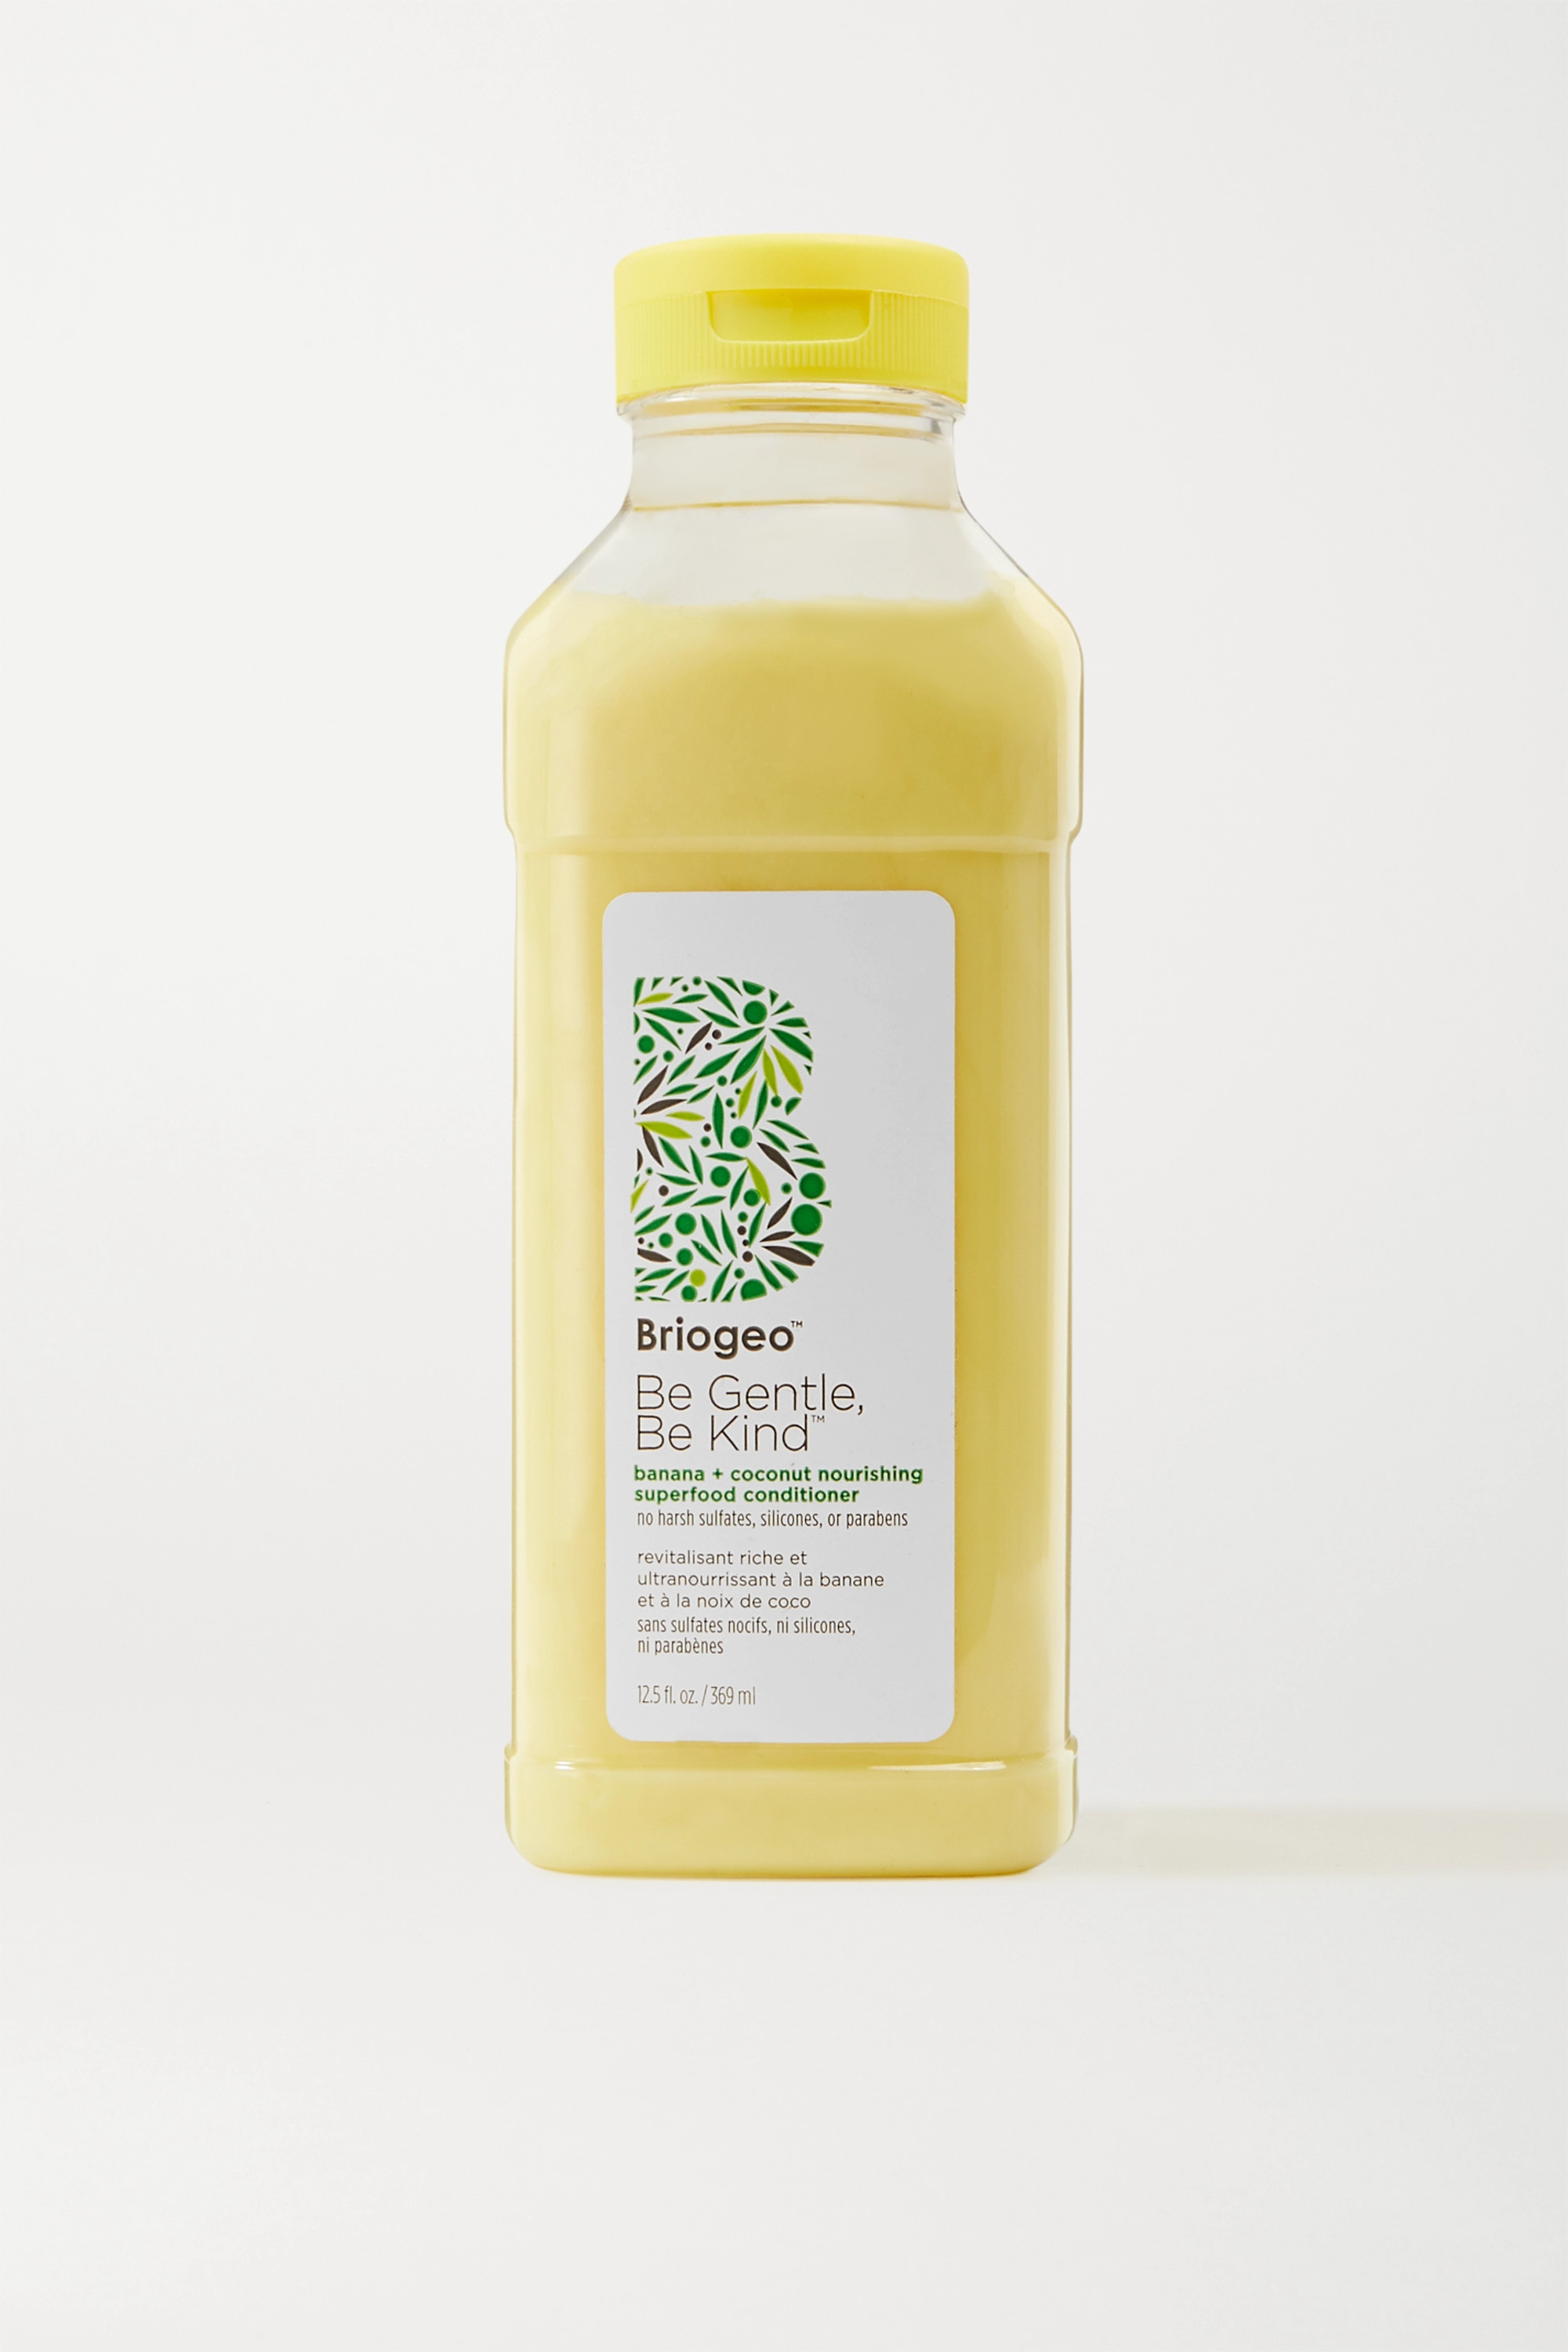 Briogeo Be Gentle Be Kind™ Banana + Coconut Nourishing Superfood Conditioner 12.5 oz/ 369 ml In Colorless